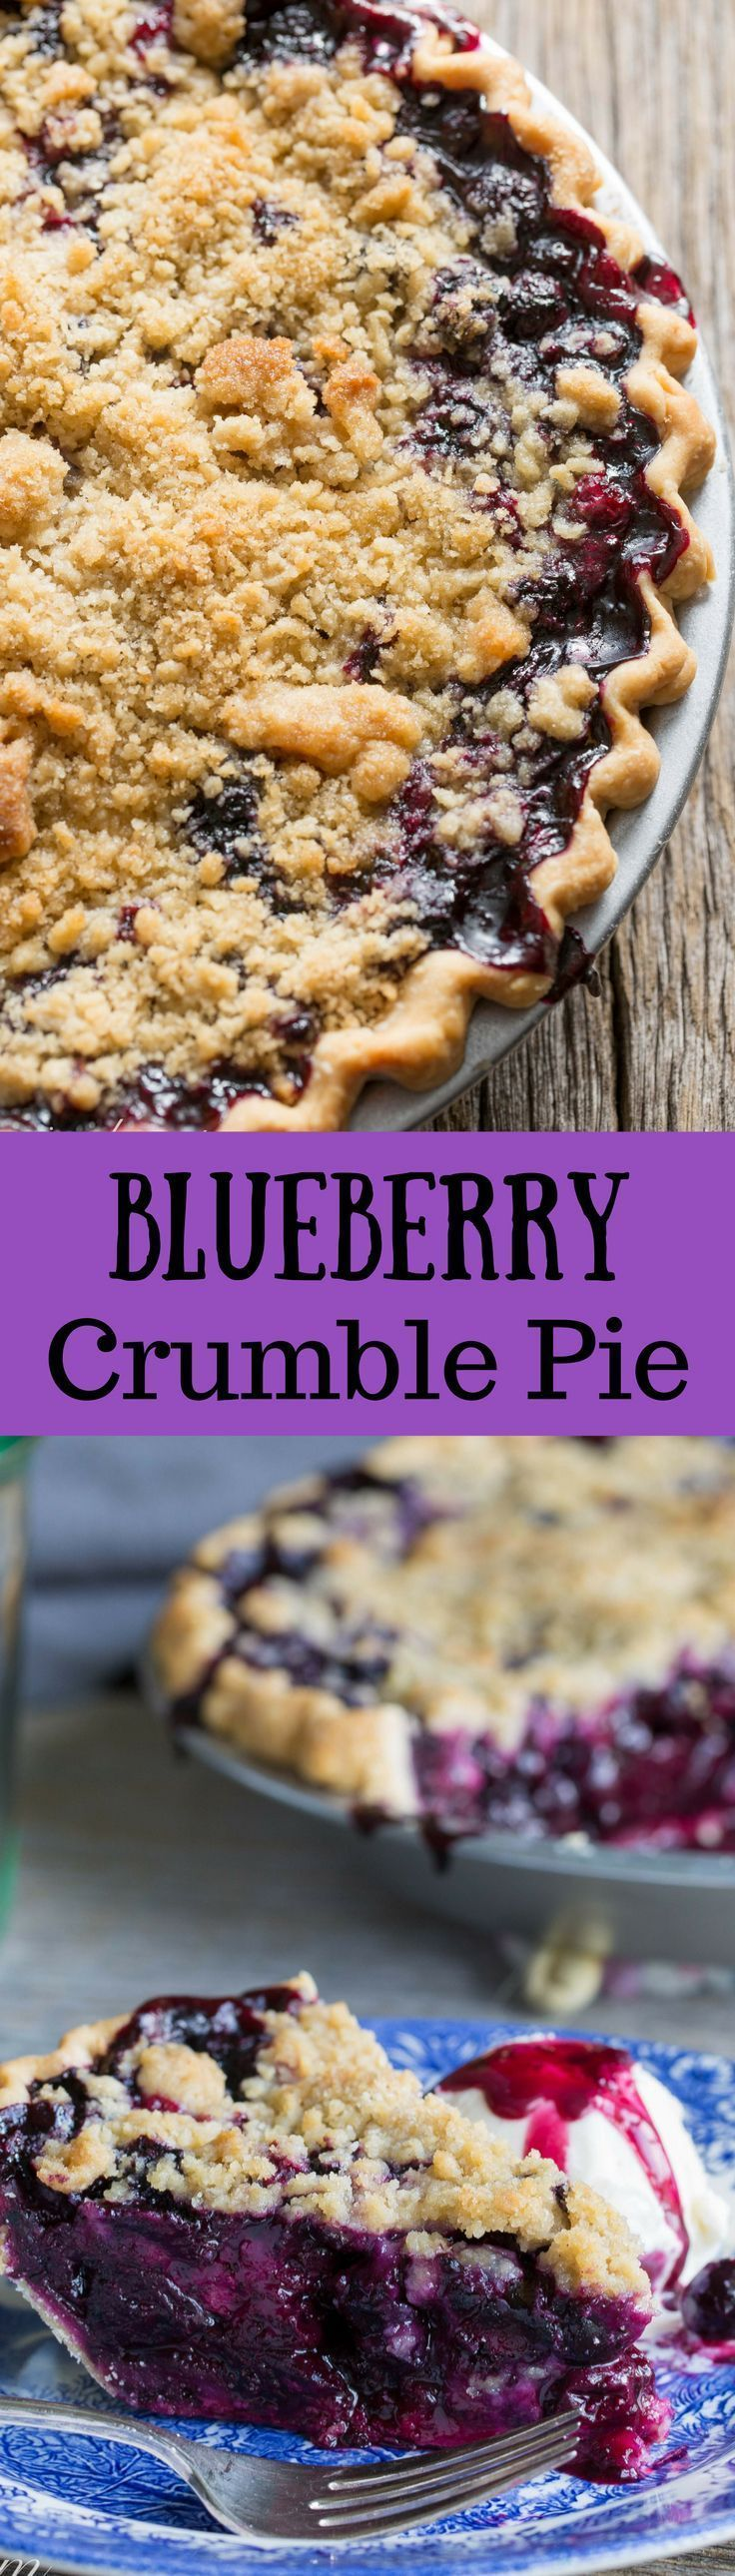 Blueberry Crumble Pie -Sweet blueberries topped with a crispy crumble all baked up in a wonderful summer pie. A must make for your ripe blueberries!  http://www.savingdessert.com